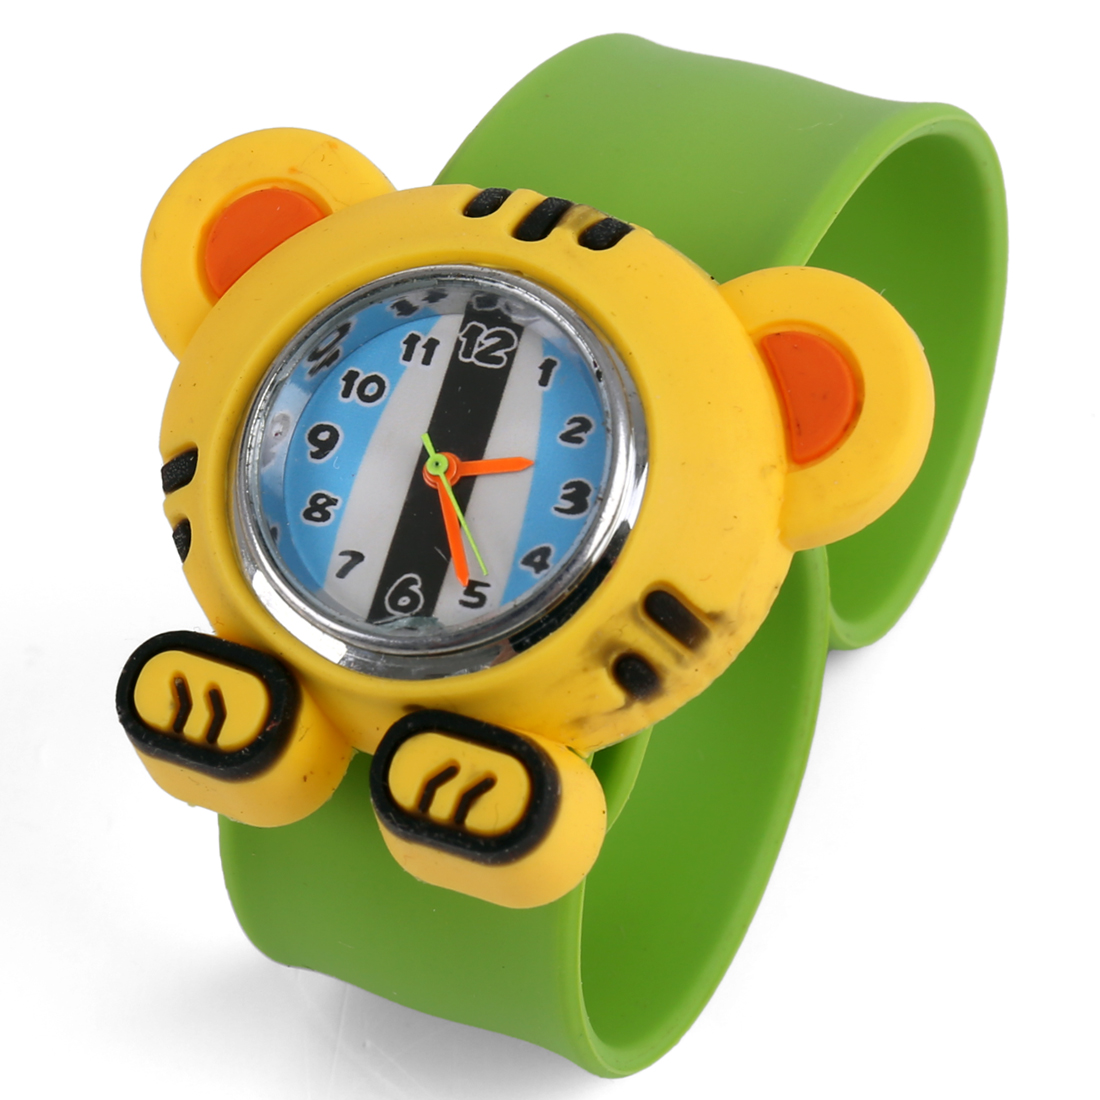 Adjustable Strap Tiger Wrist Watch for Boys Girls Light Green Yellow